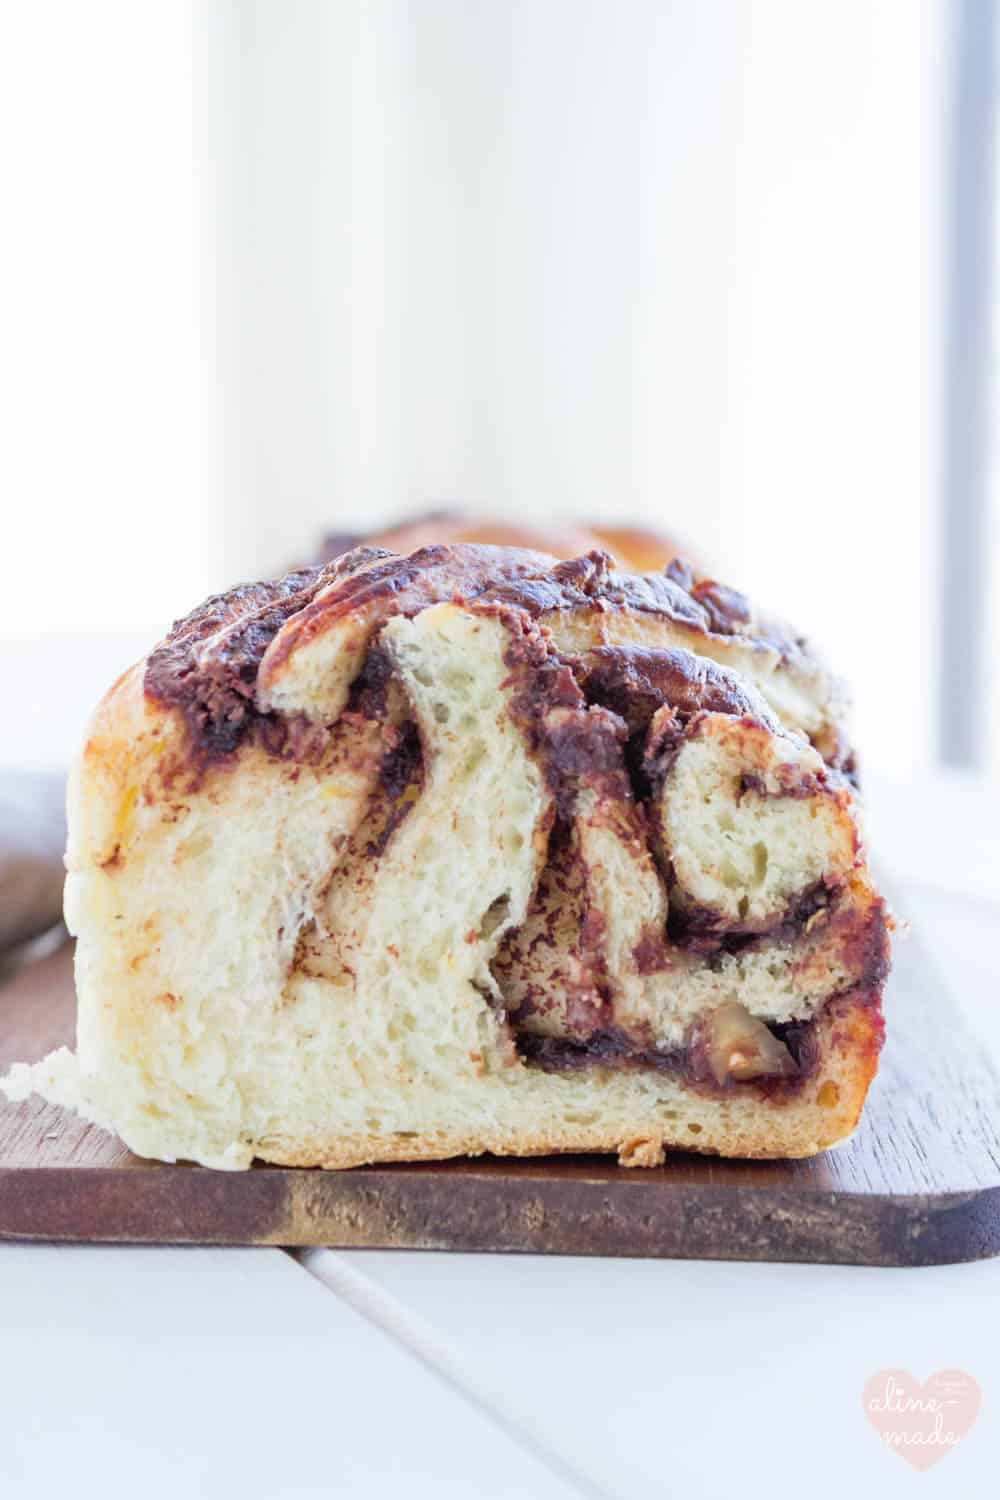 Braided Nutella Bread with Hazelnuts (Nutella Zopf) - Moist and crunchy.